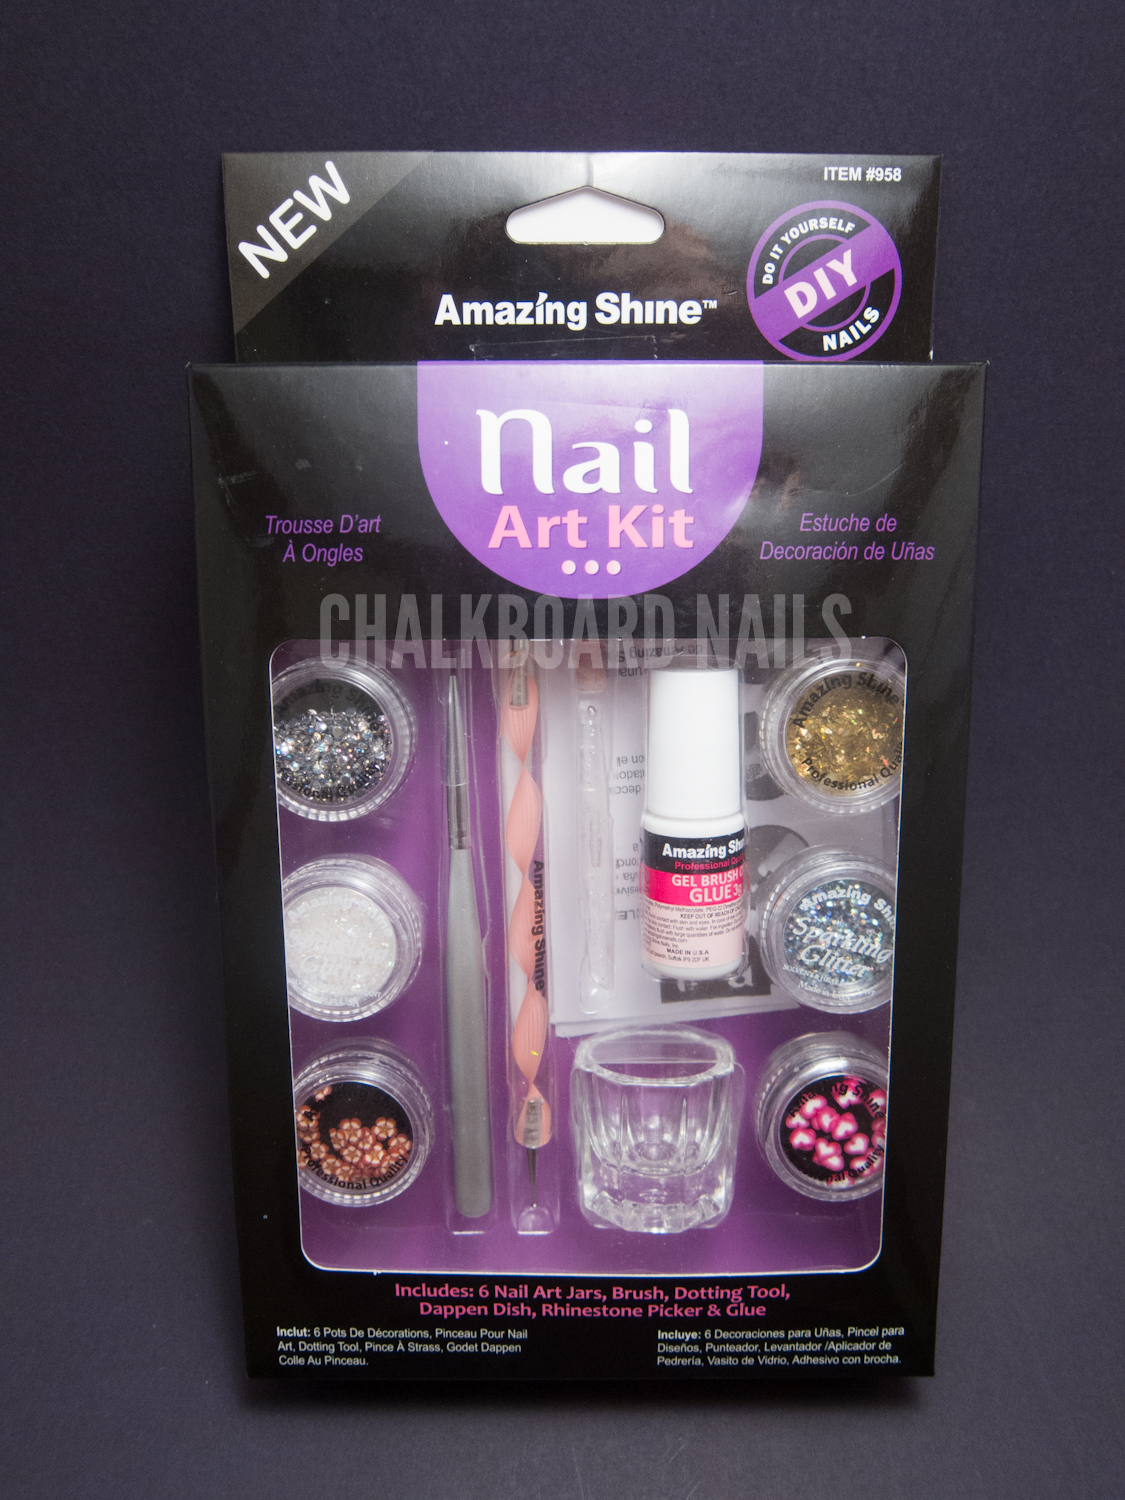 Amazing Shine Nail Art Kit Review | Chalkboard Nails | Nail Art Blog